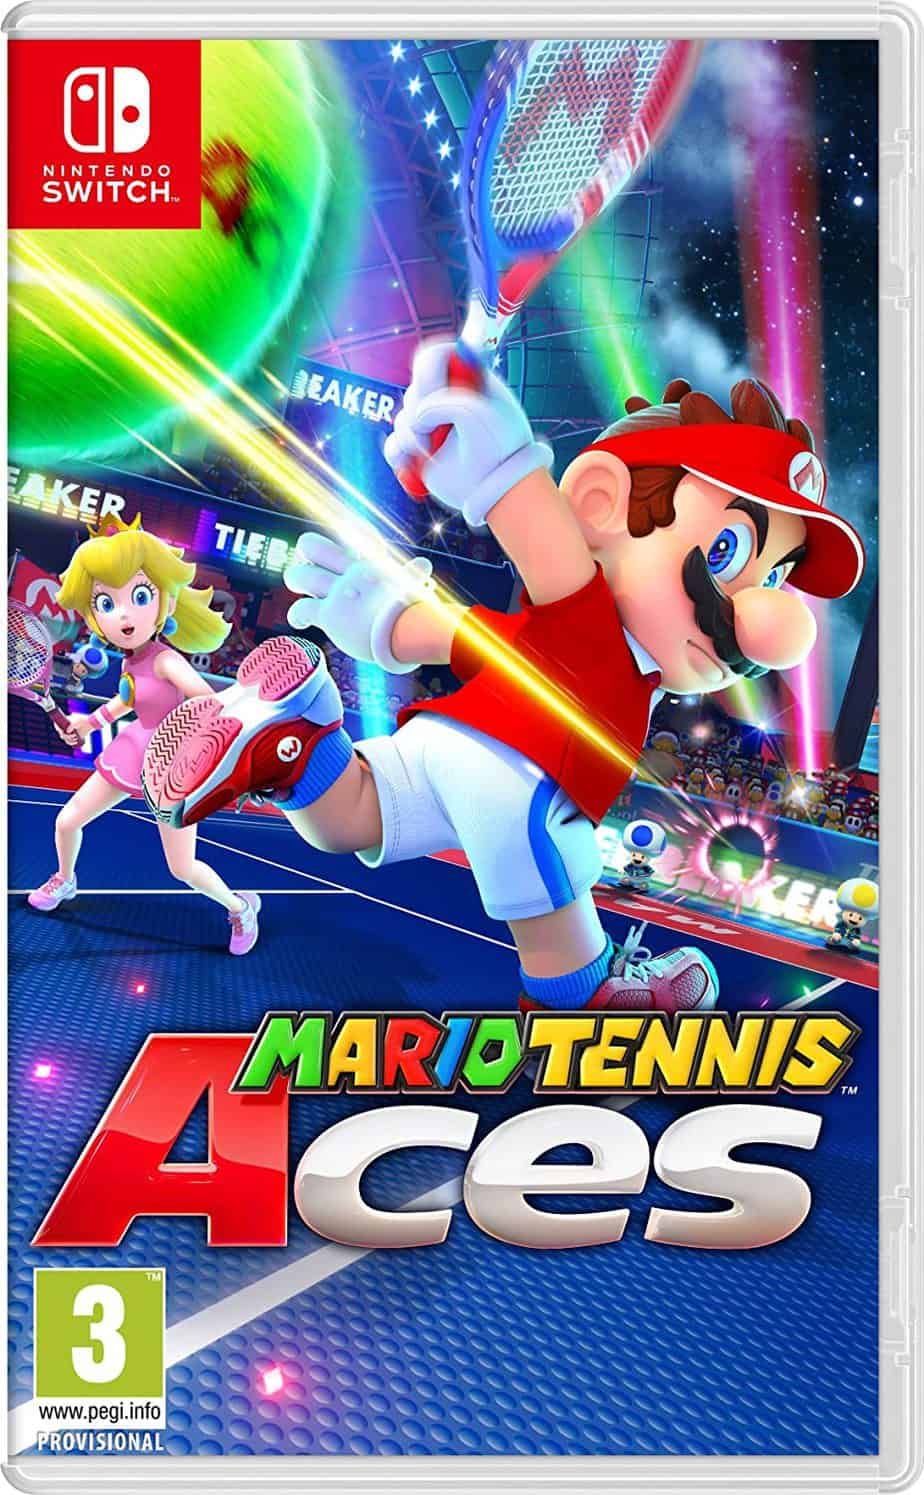 Best Mario multiplayer games - Mario Tennis Aces